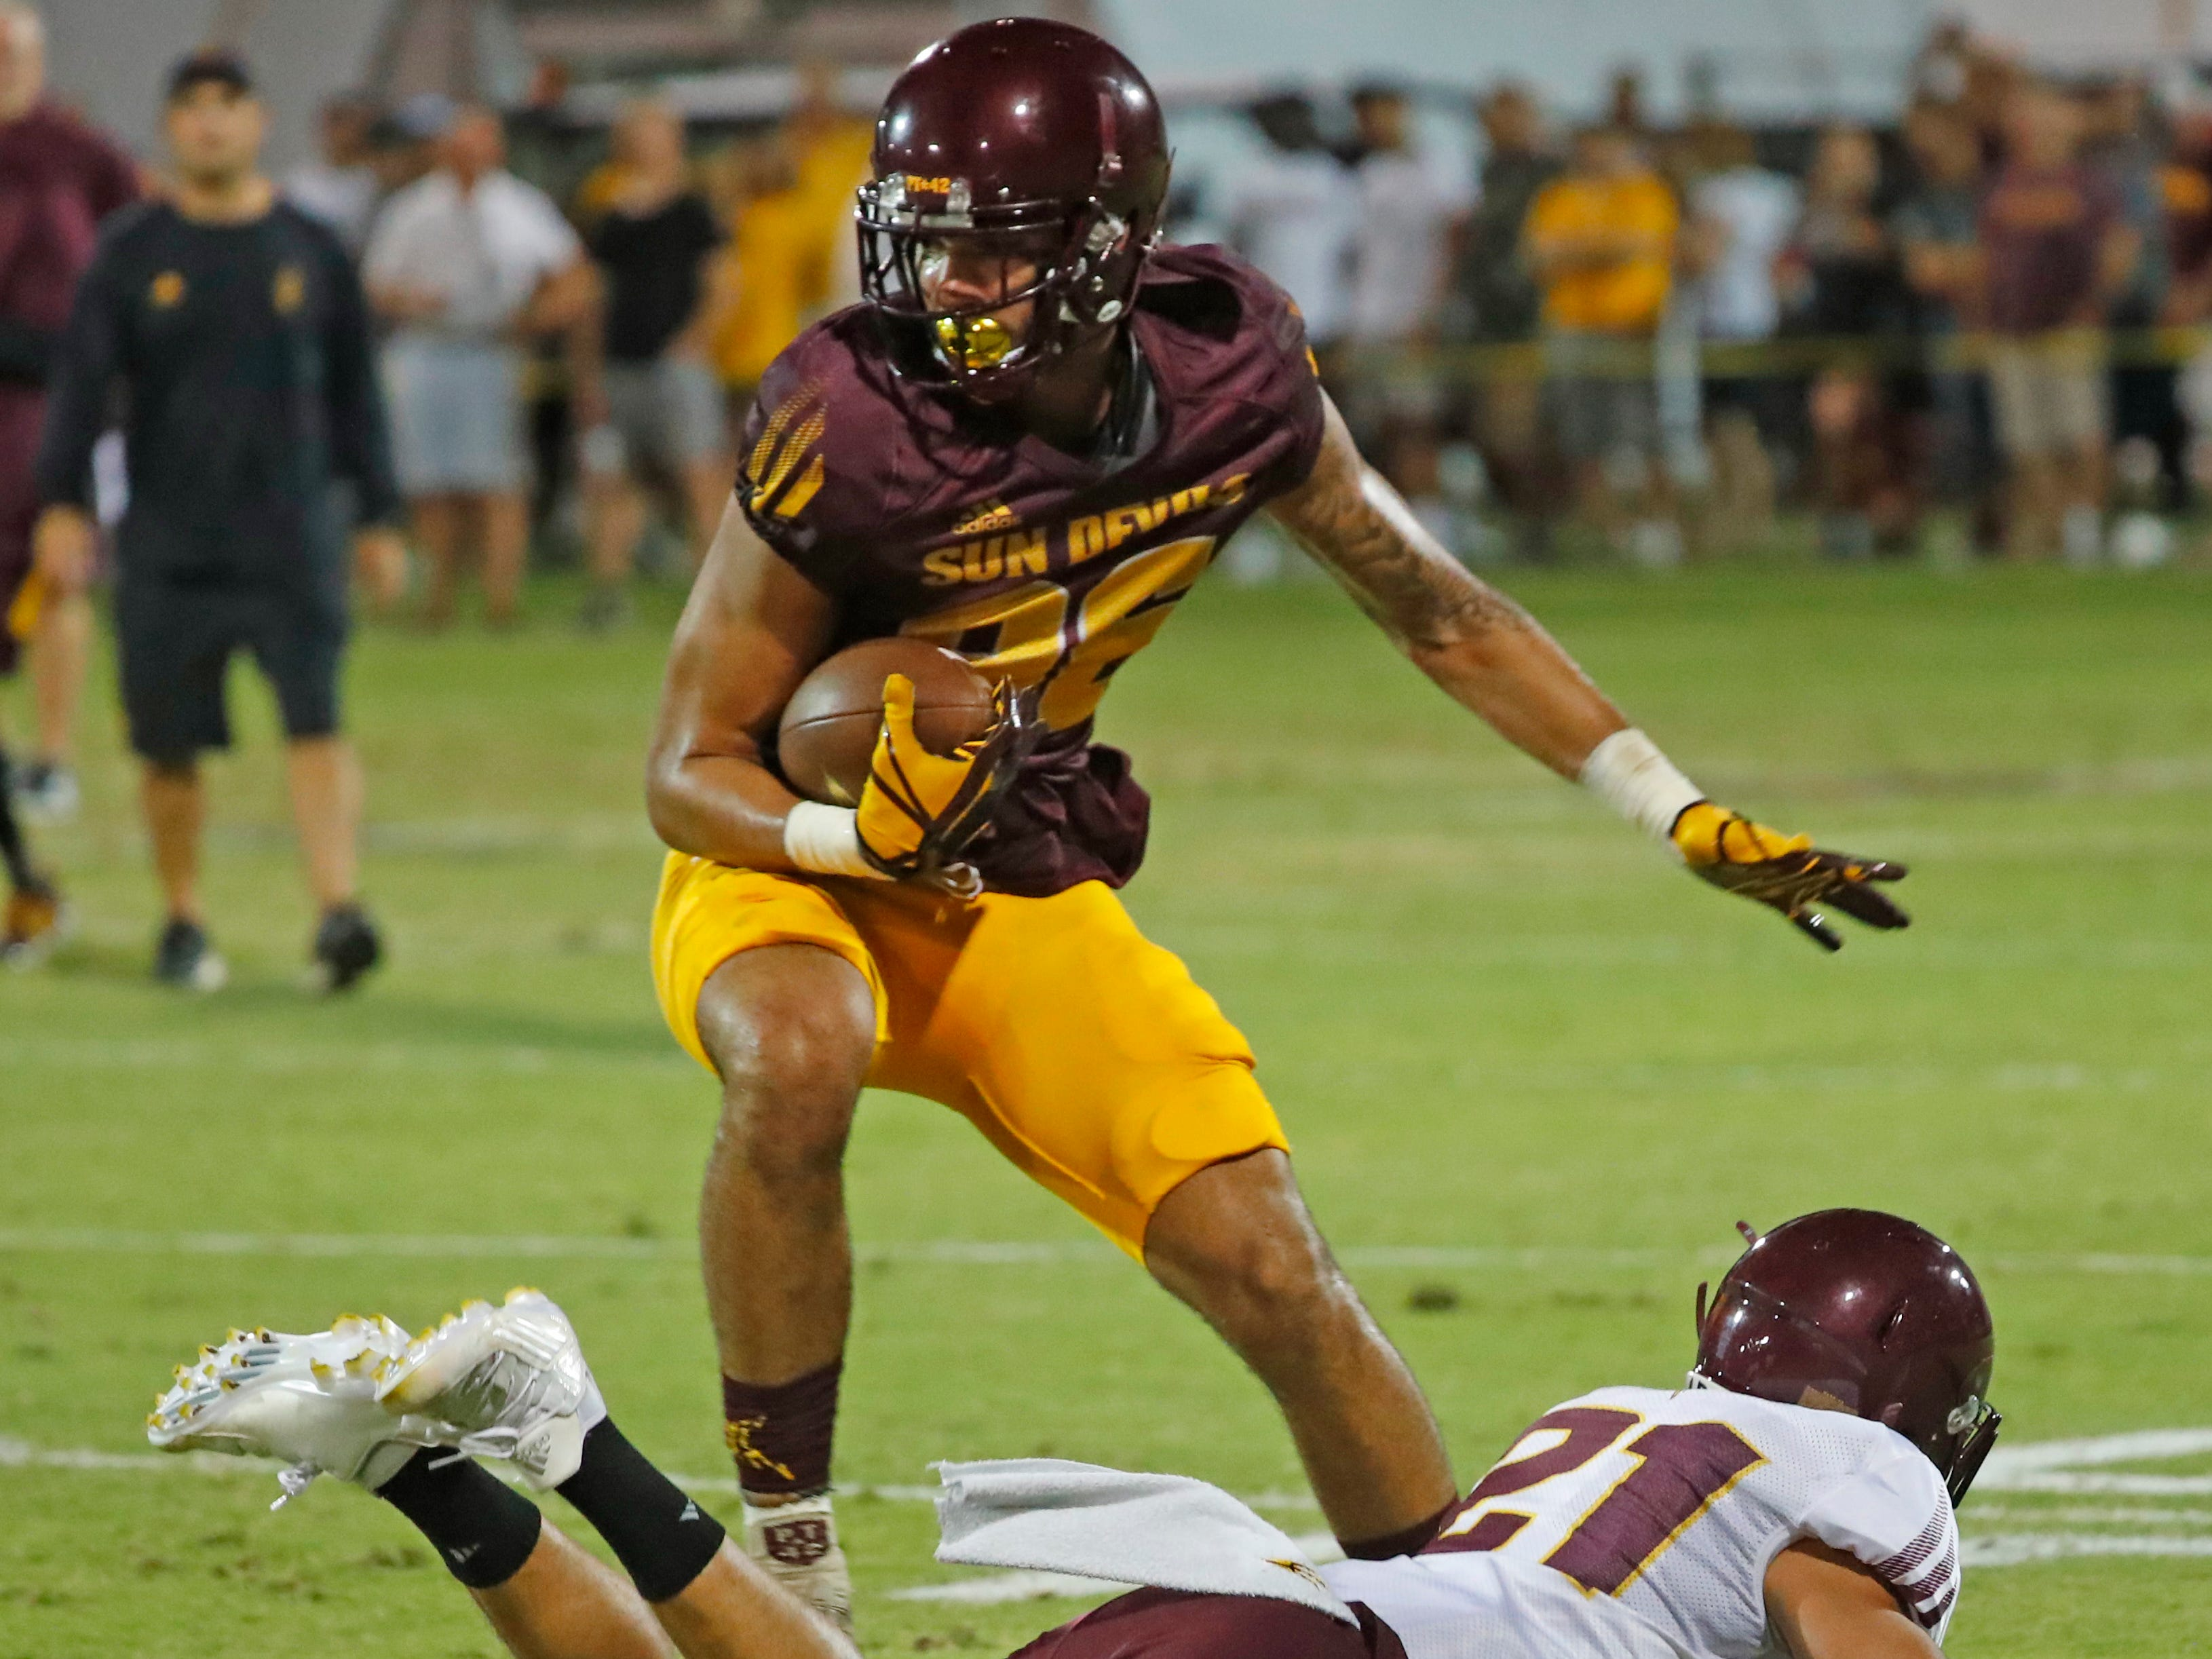 ASU's Curtis Hodges (86) makes a catch and breaks a tackle from Terin Adams (21) during the ASU scrimmage at Kajikawa Practice Fields in Tempe, Ariz. on Aug. 11, 2018.